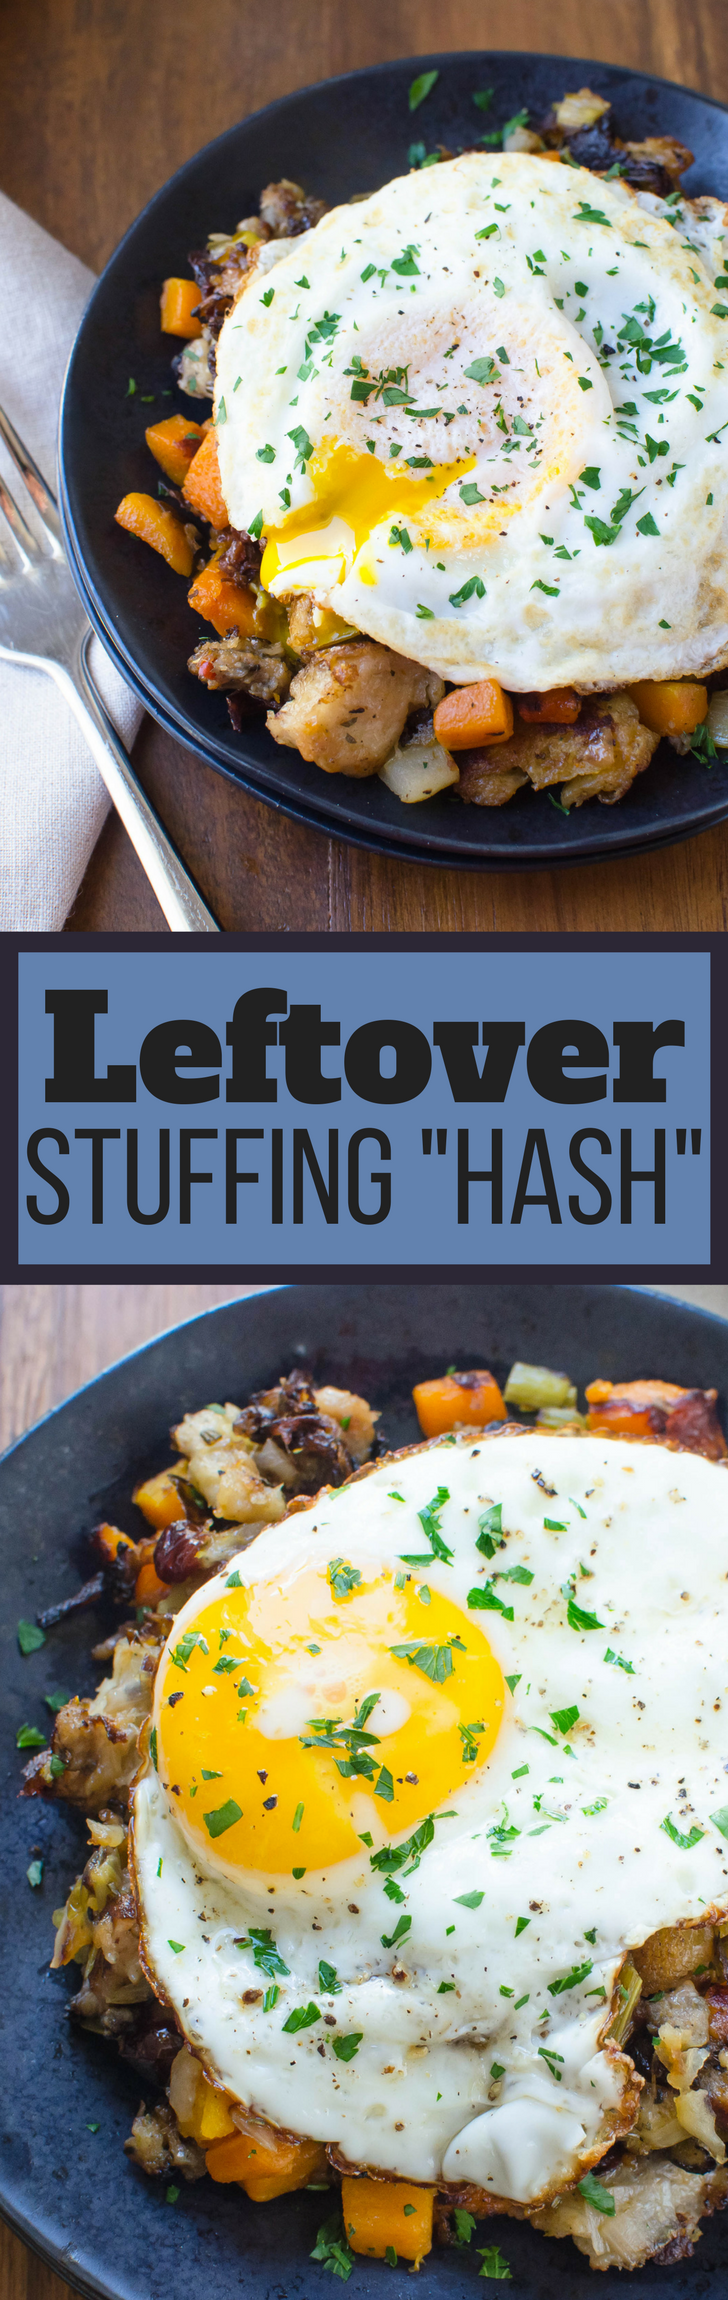 What to do with leftover holiday stuffing? Leftover Stuffing Hash of course! Top w/ an oozy egg for breakfast nirvana! Black Friday breakfast of champions! #hash #leftovers #stuffing #eggs #thanksgivingleftovers #breakfast #brunch #holidays #dressing #friedegg #oozyegg #easybreakfast #easyleftoversrecipe #recipeforleftovers